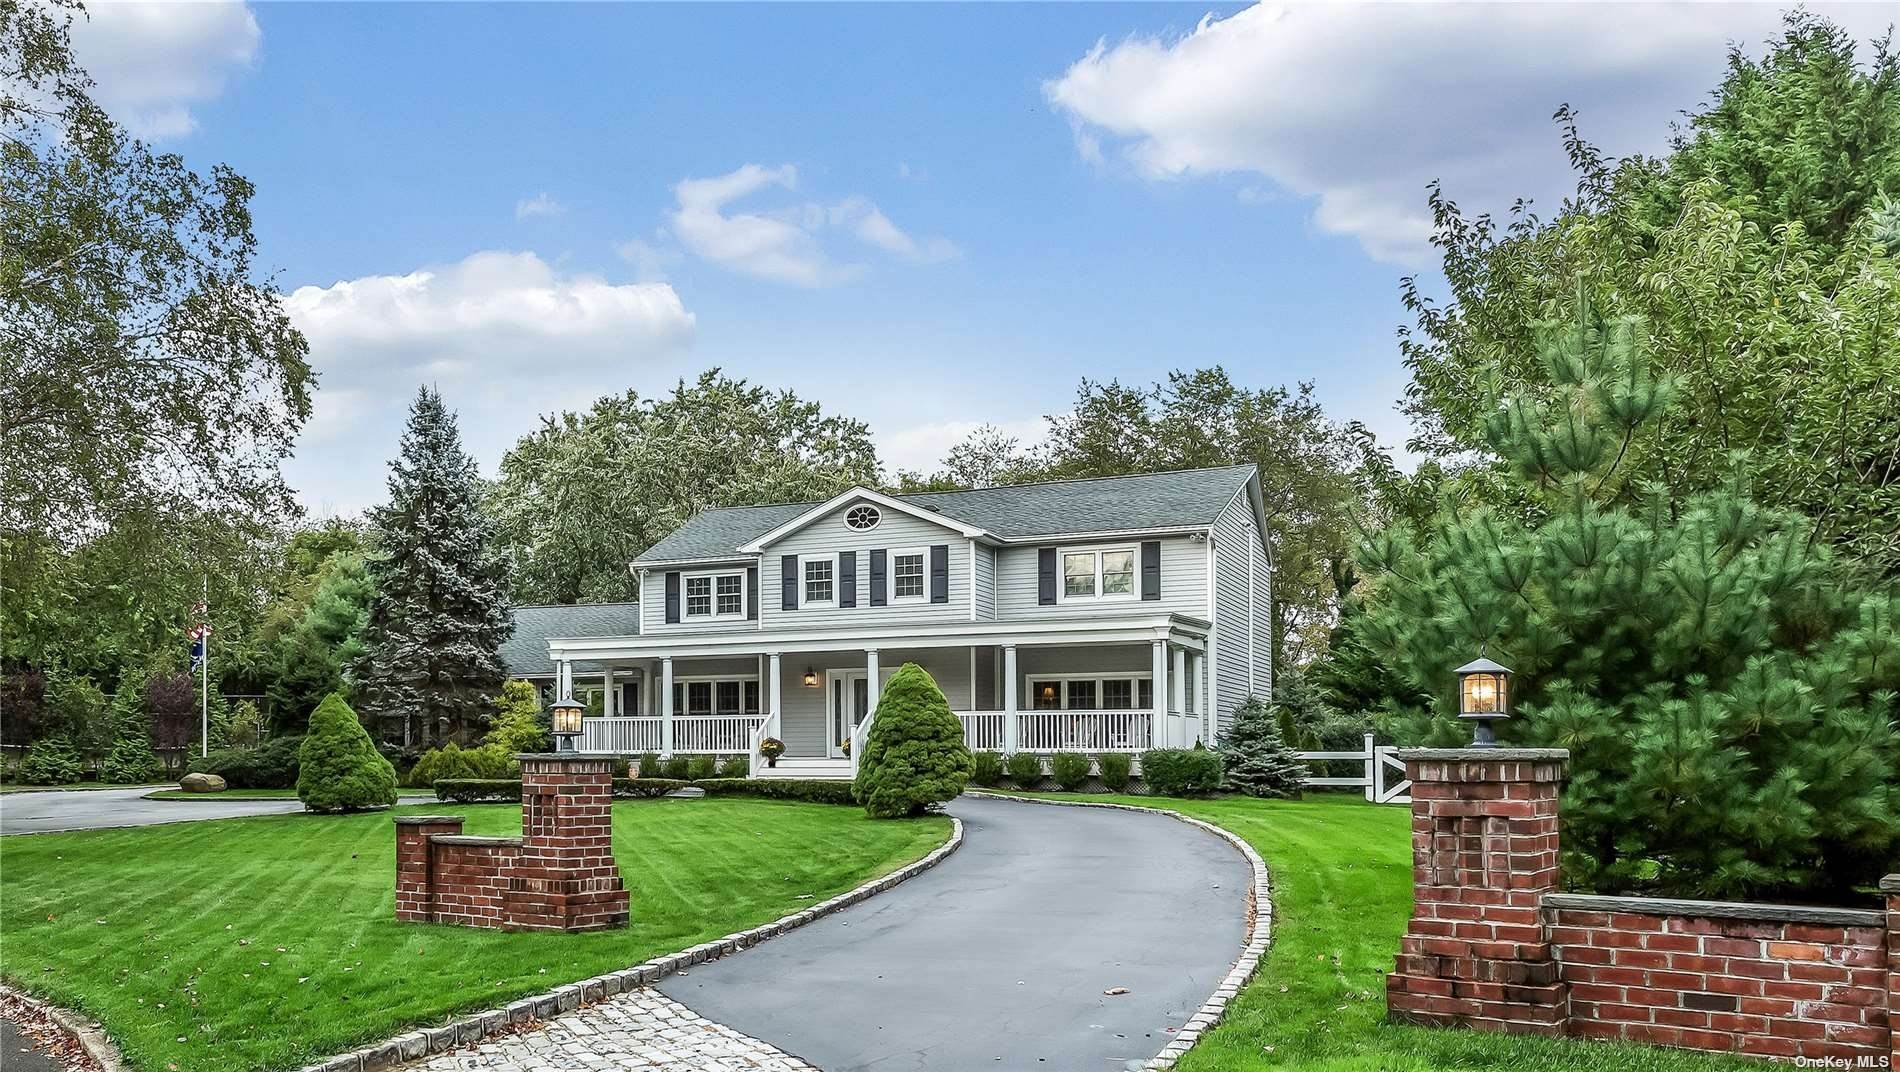 Residential for Sale at 4 Rough Riders Court, Cold Spring Hrbr, NY 11724 Cold Spring Harbor, New York 11724 United States